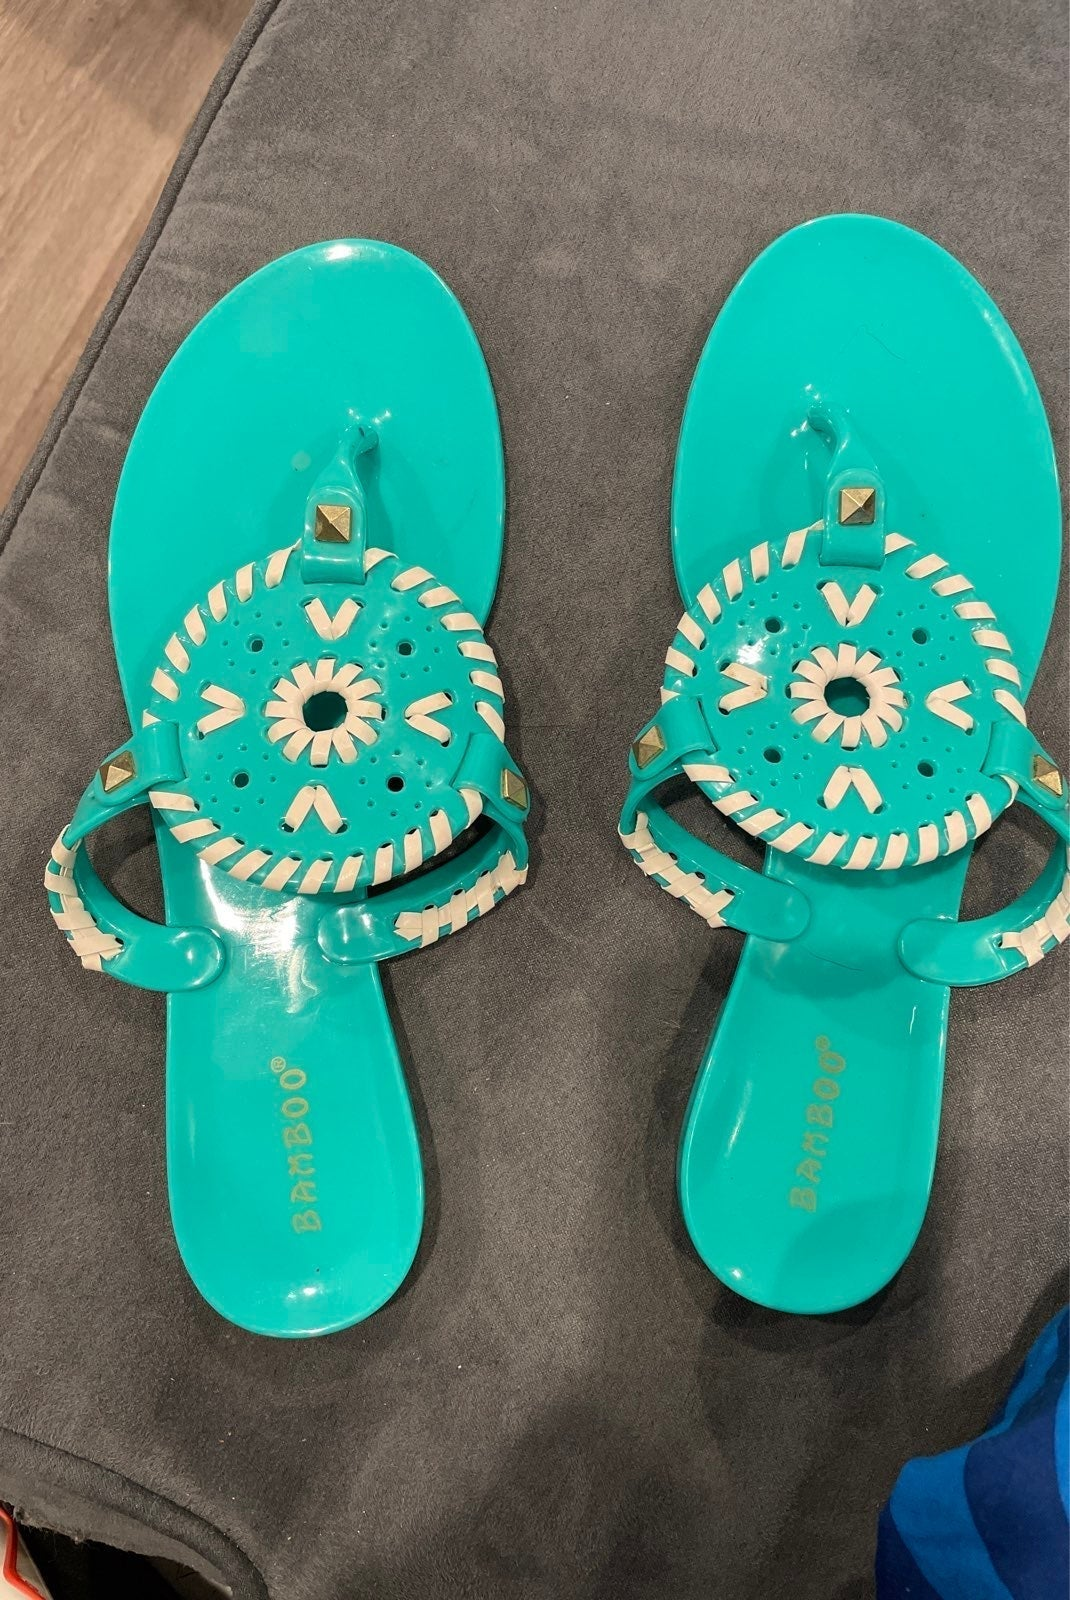 Bamboo plastic/jelly material Sandals